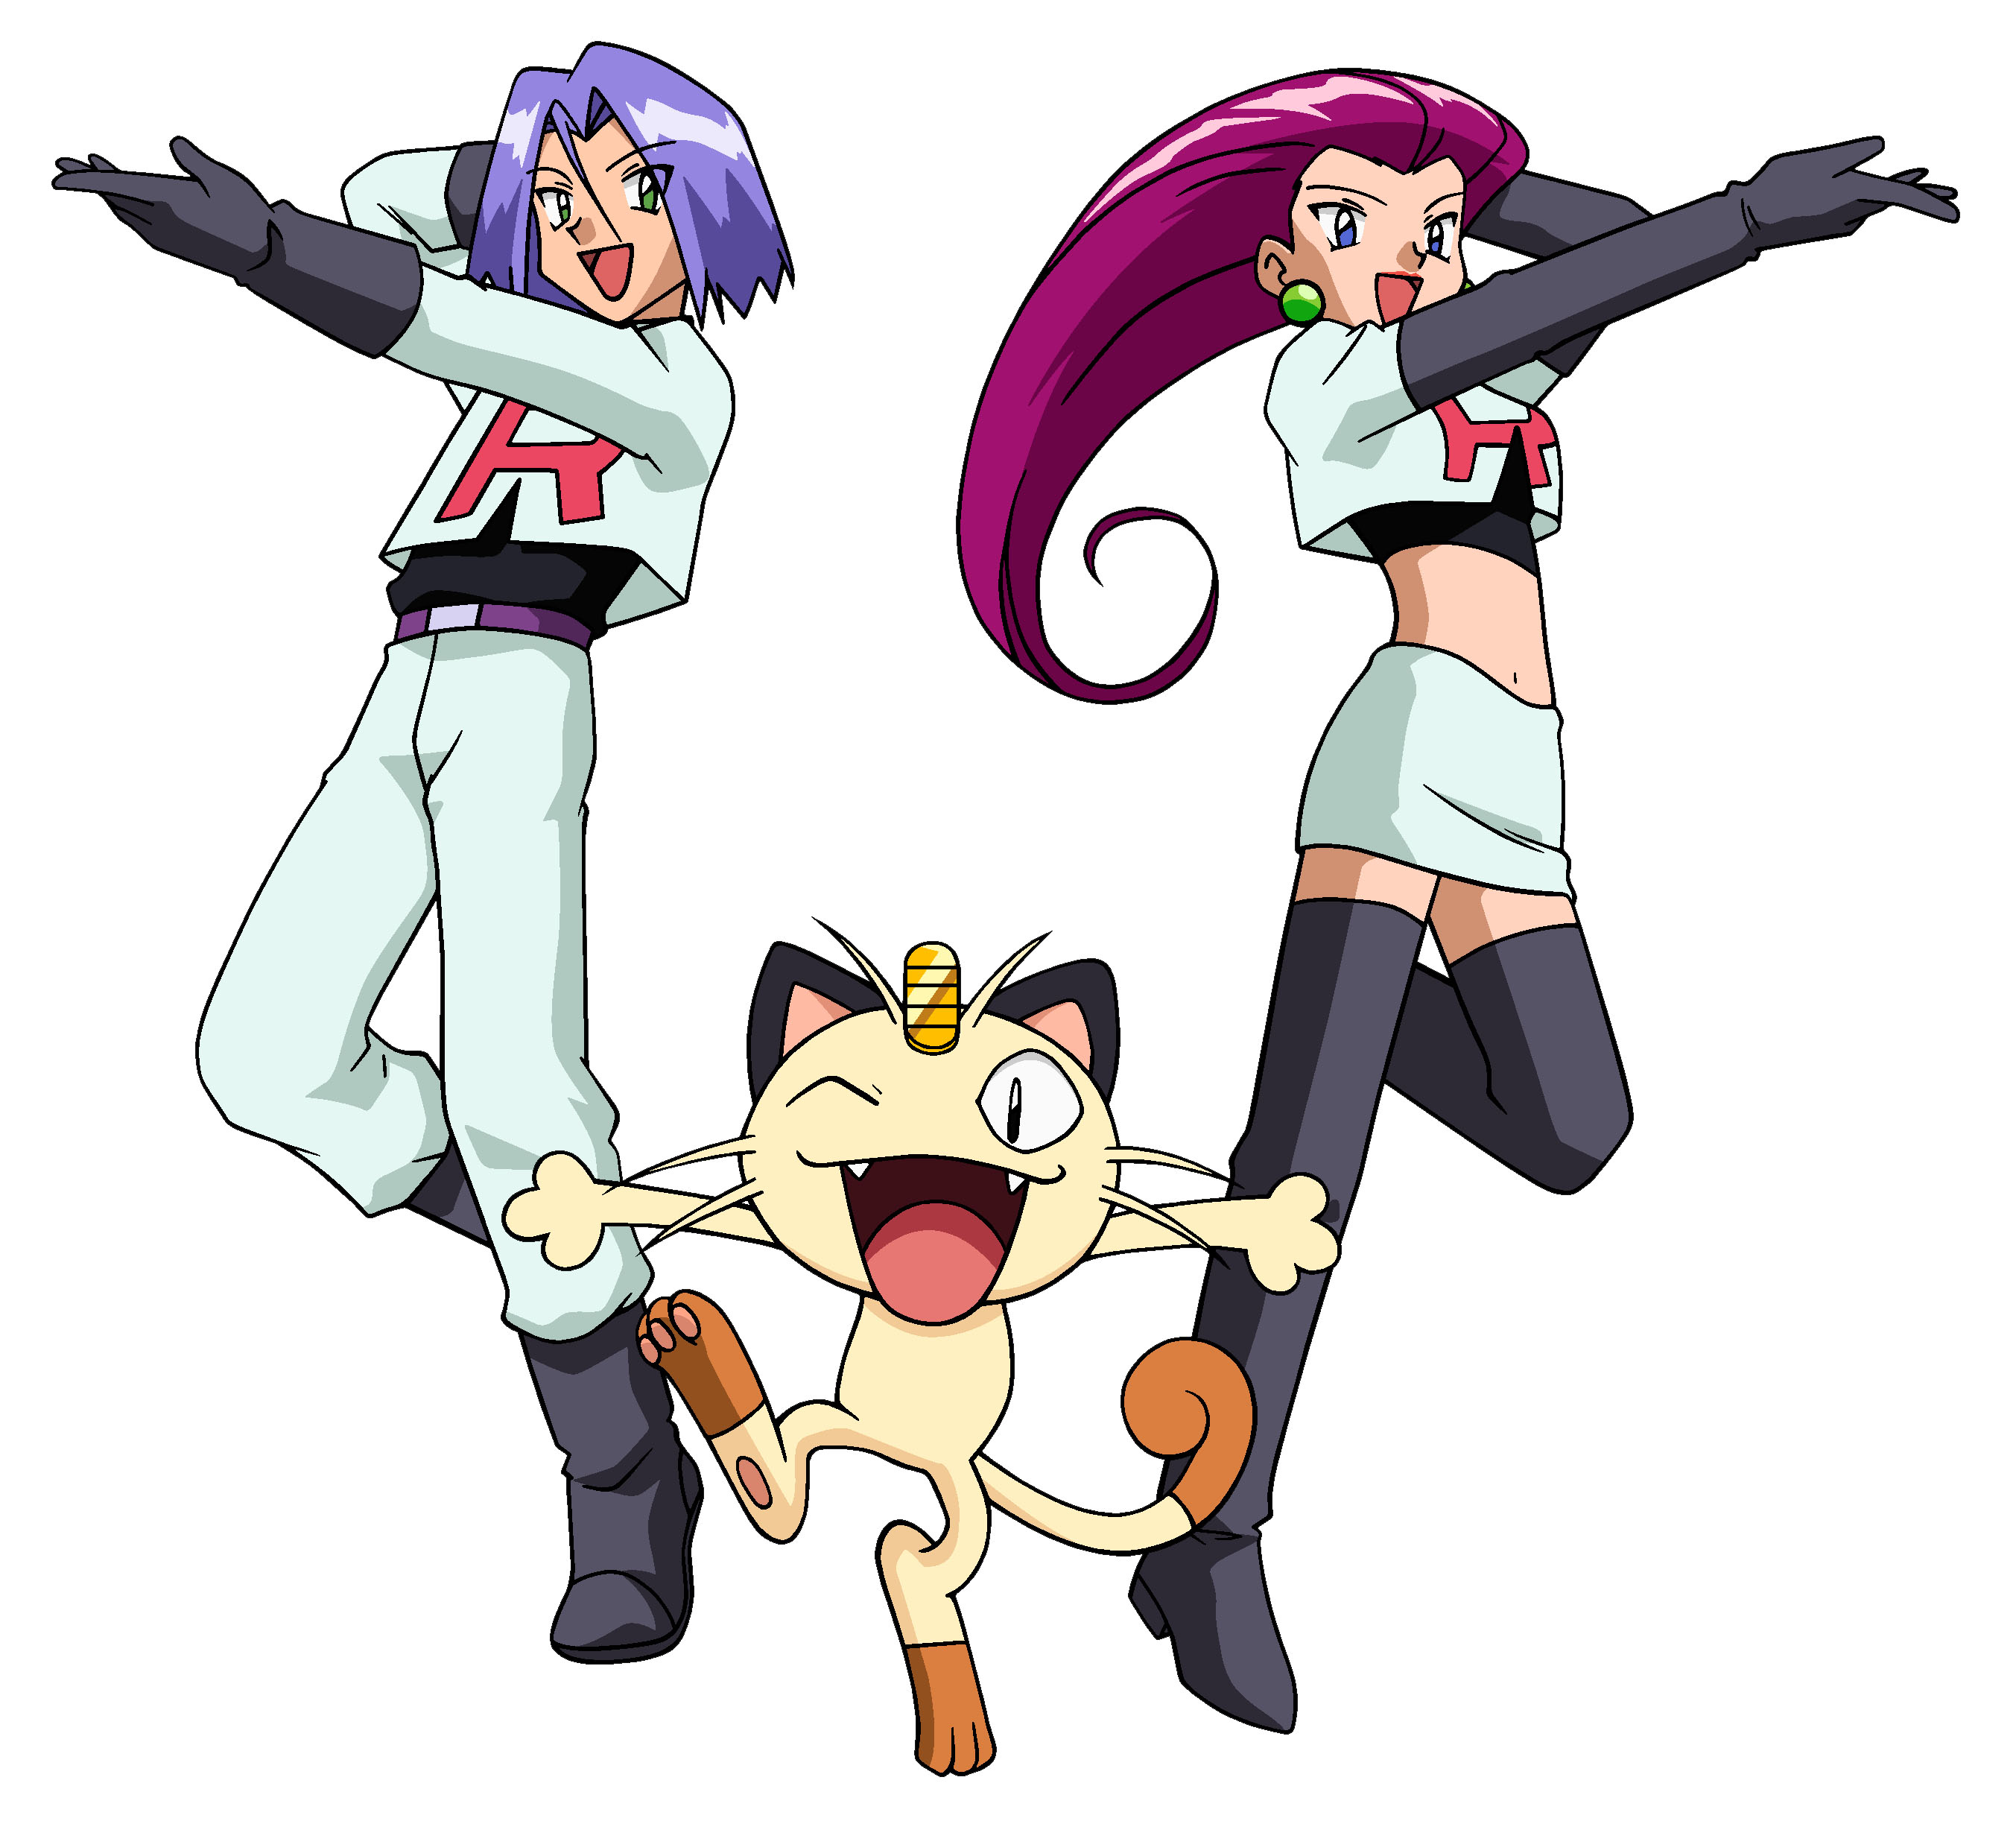 write about is team rocket truly evil or are jesse james just